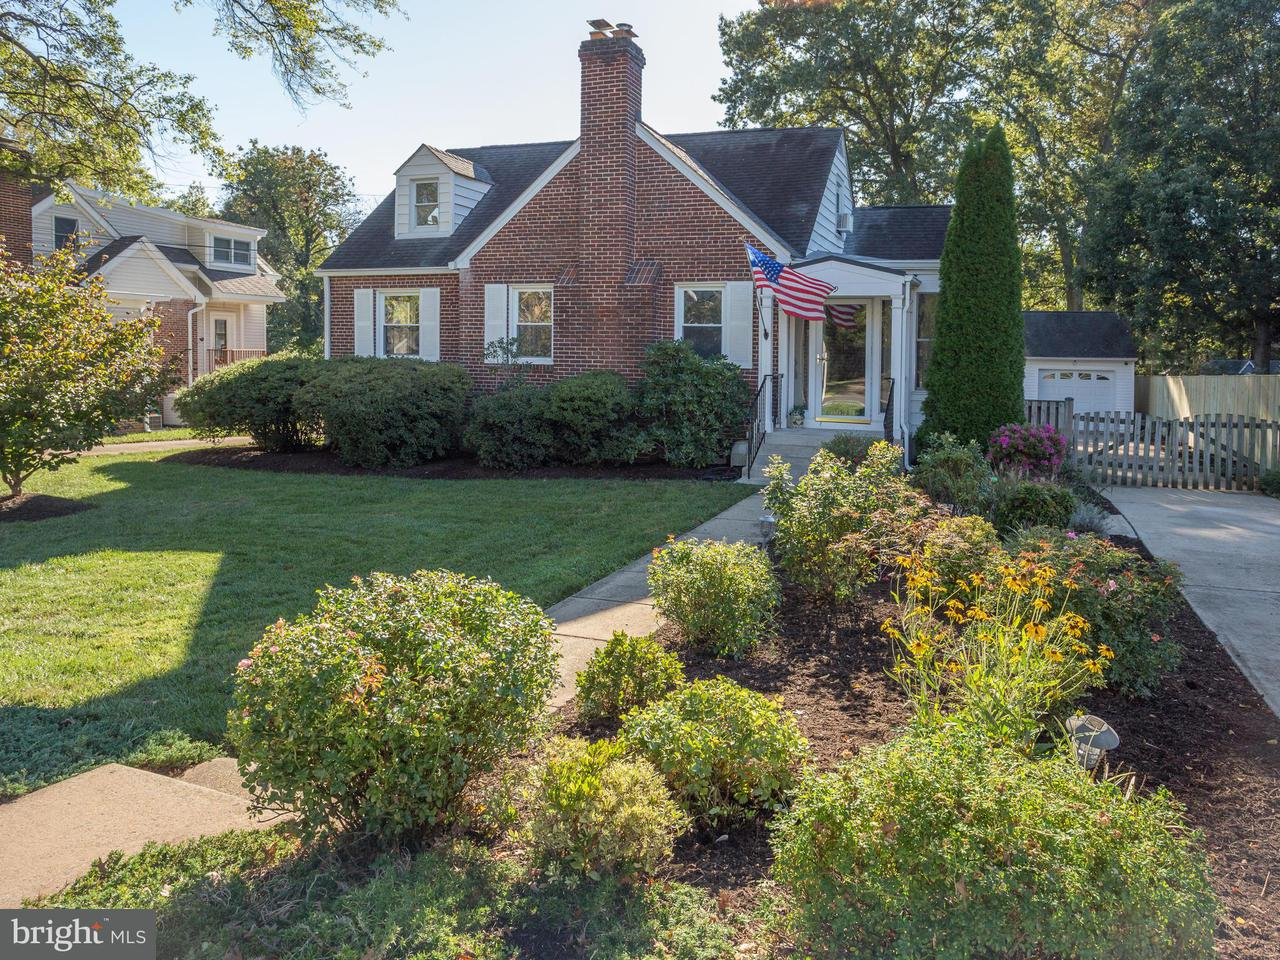 Single Family Home for Sale at 209 WEST ST S 209 WEST ST S Falls Church, Virginia 22046 United States